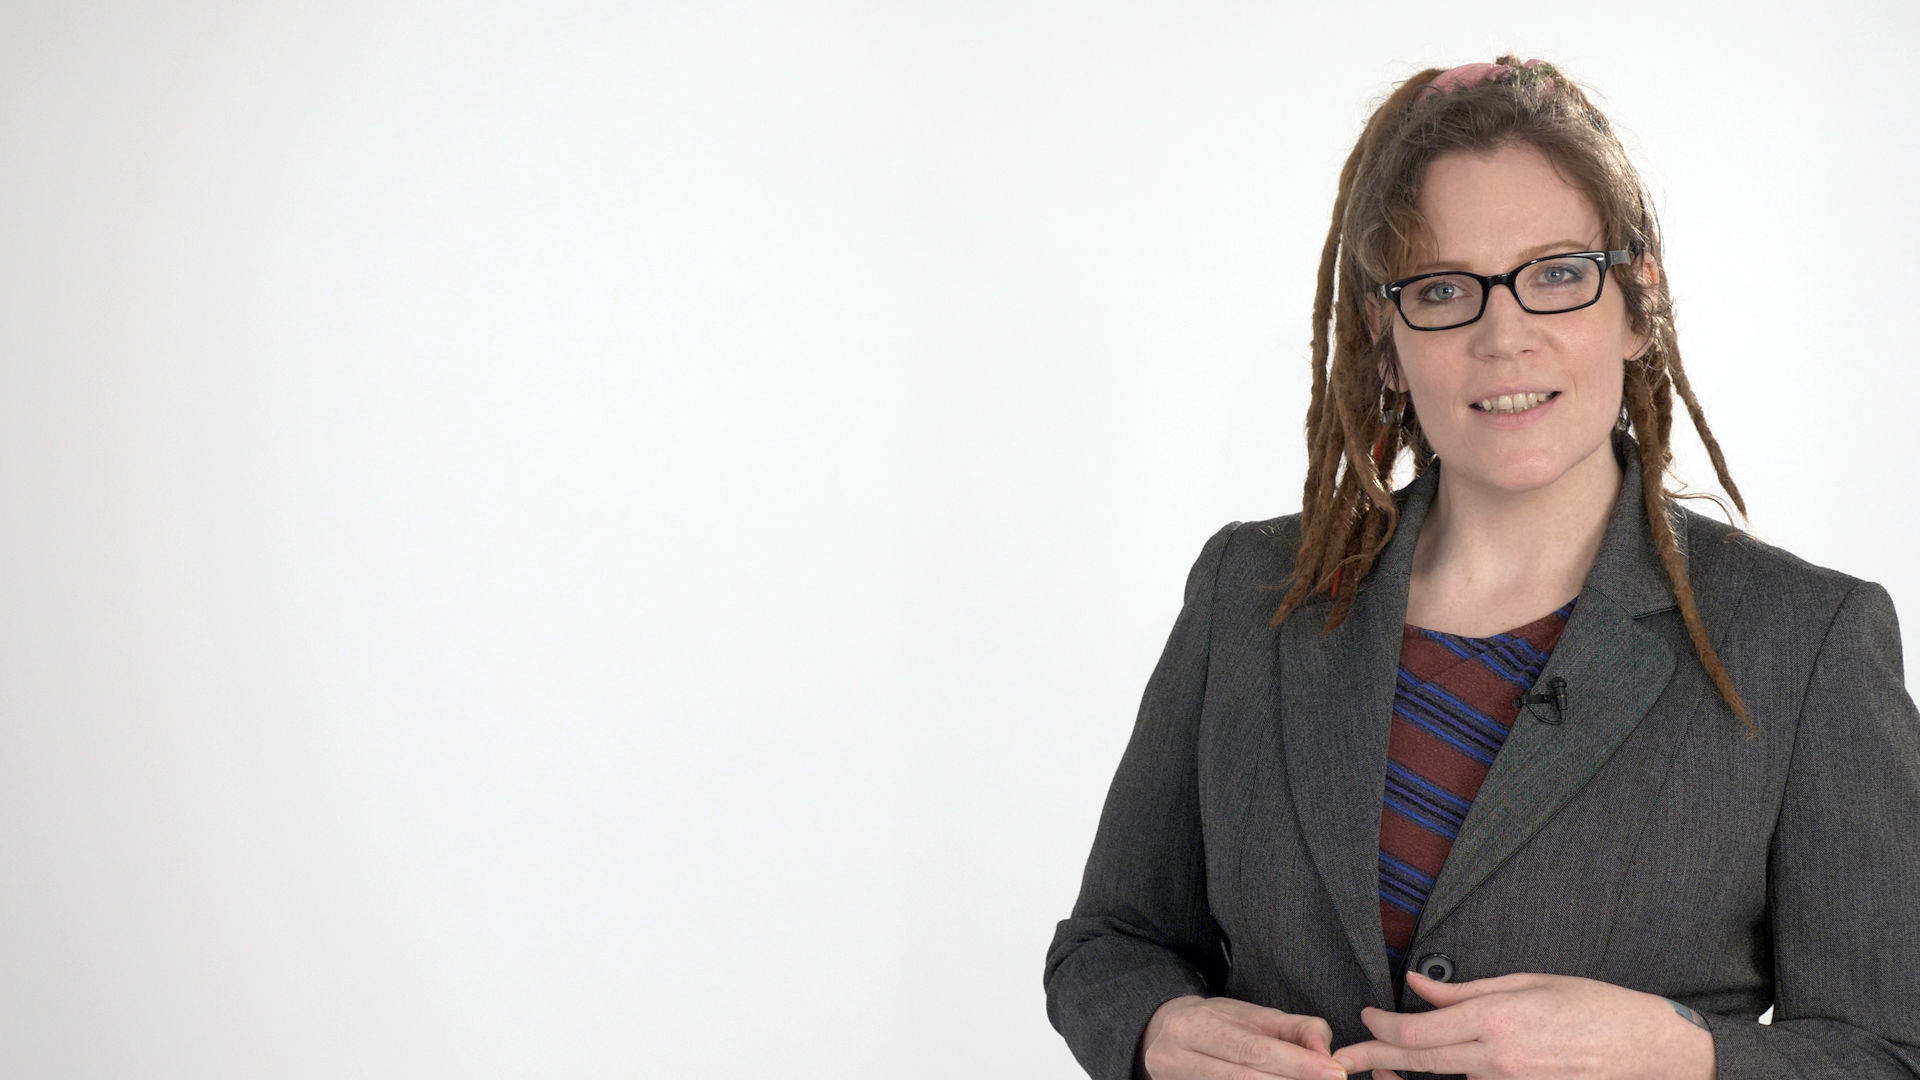 Rachel Liley - Producer, Editor, Closed CaptioningAs an experienced producer of stage and video, Rachel brings an important creative voice to SGP. Communicating in english, french and American sign language, she helps clients reach new audiences everyday.